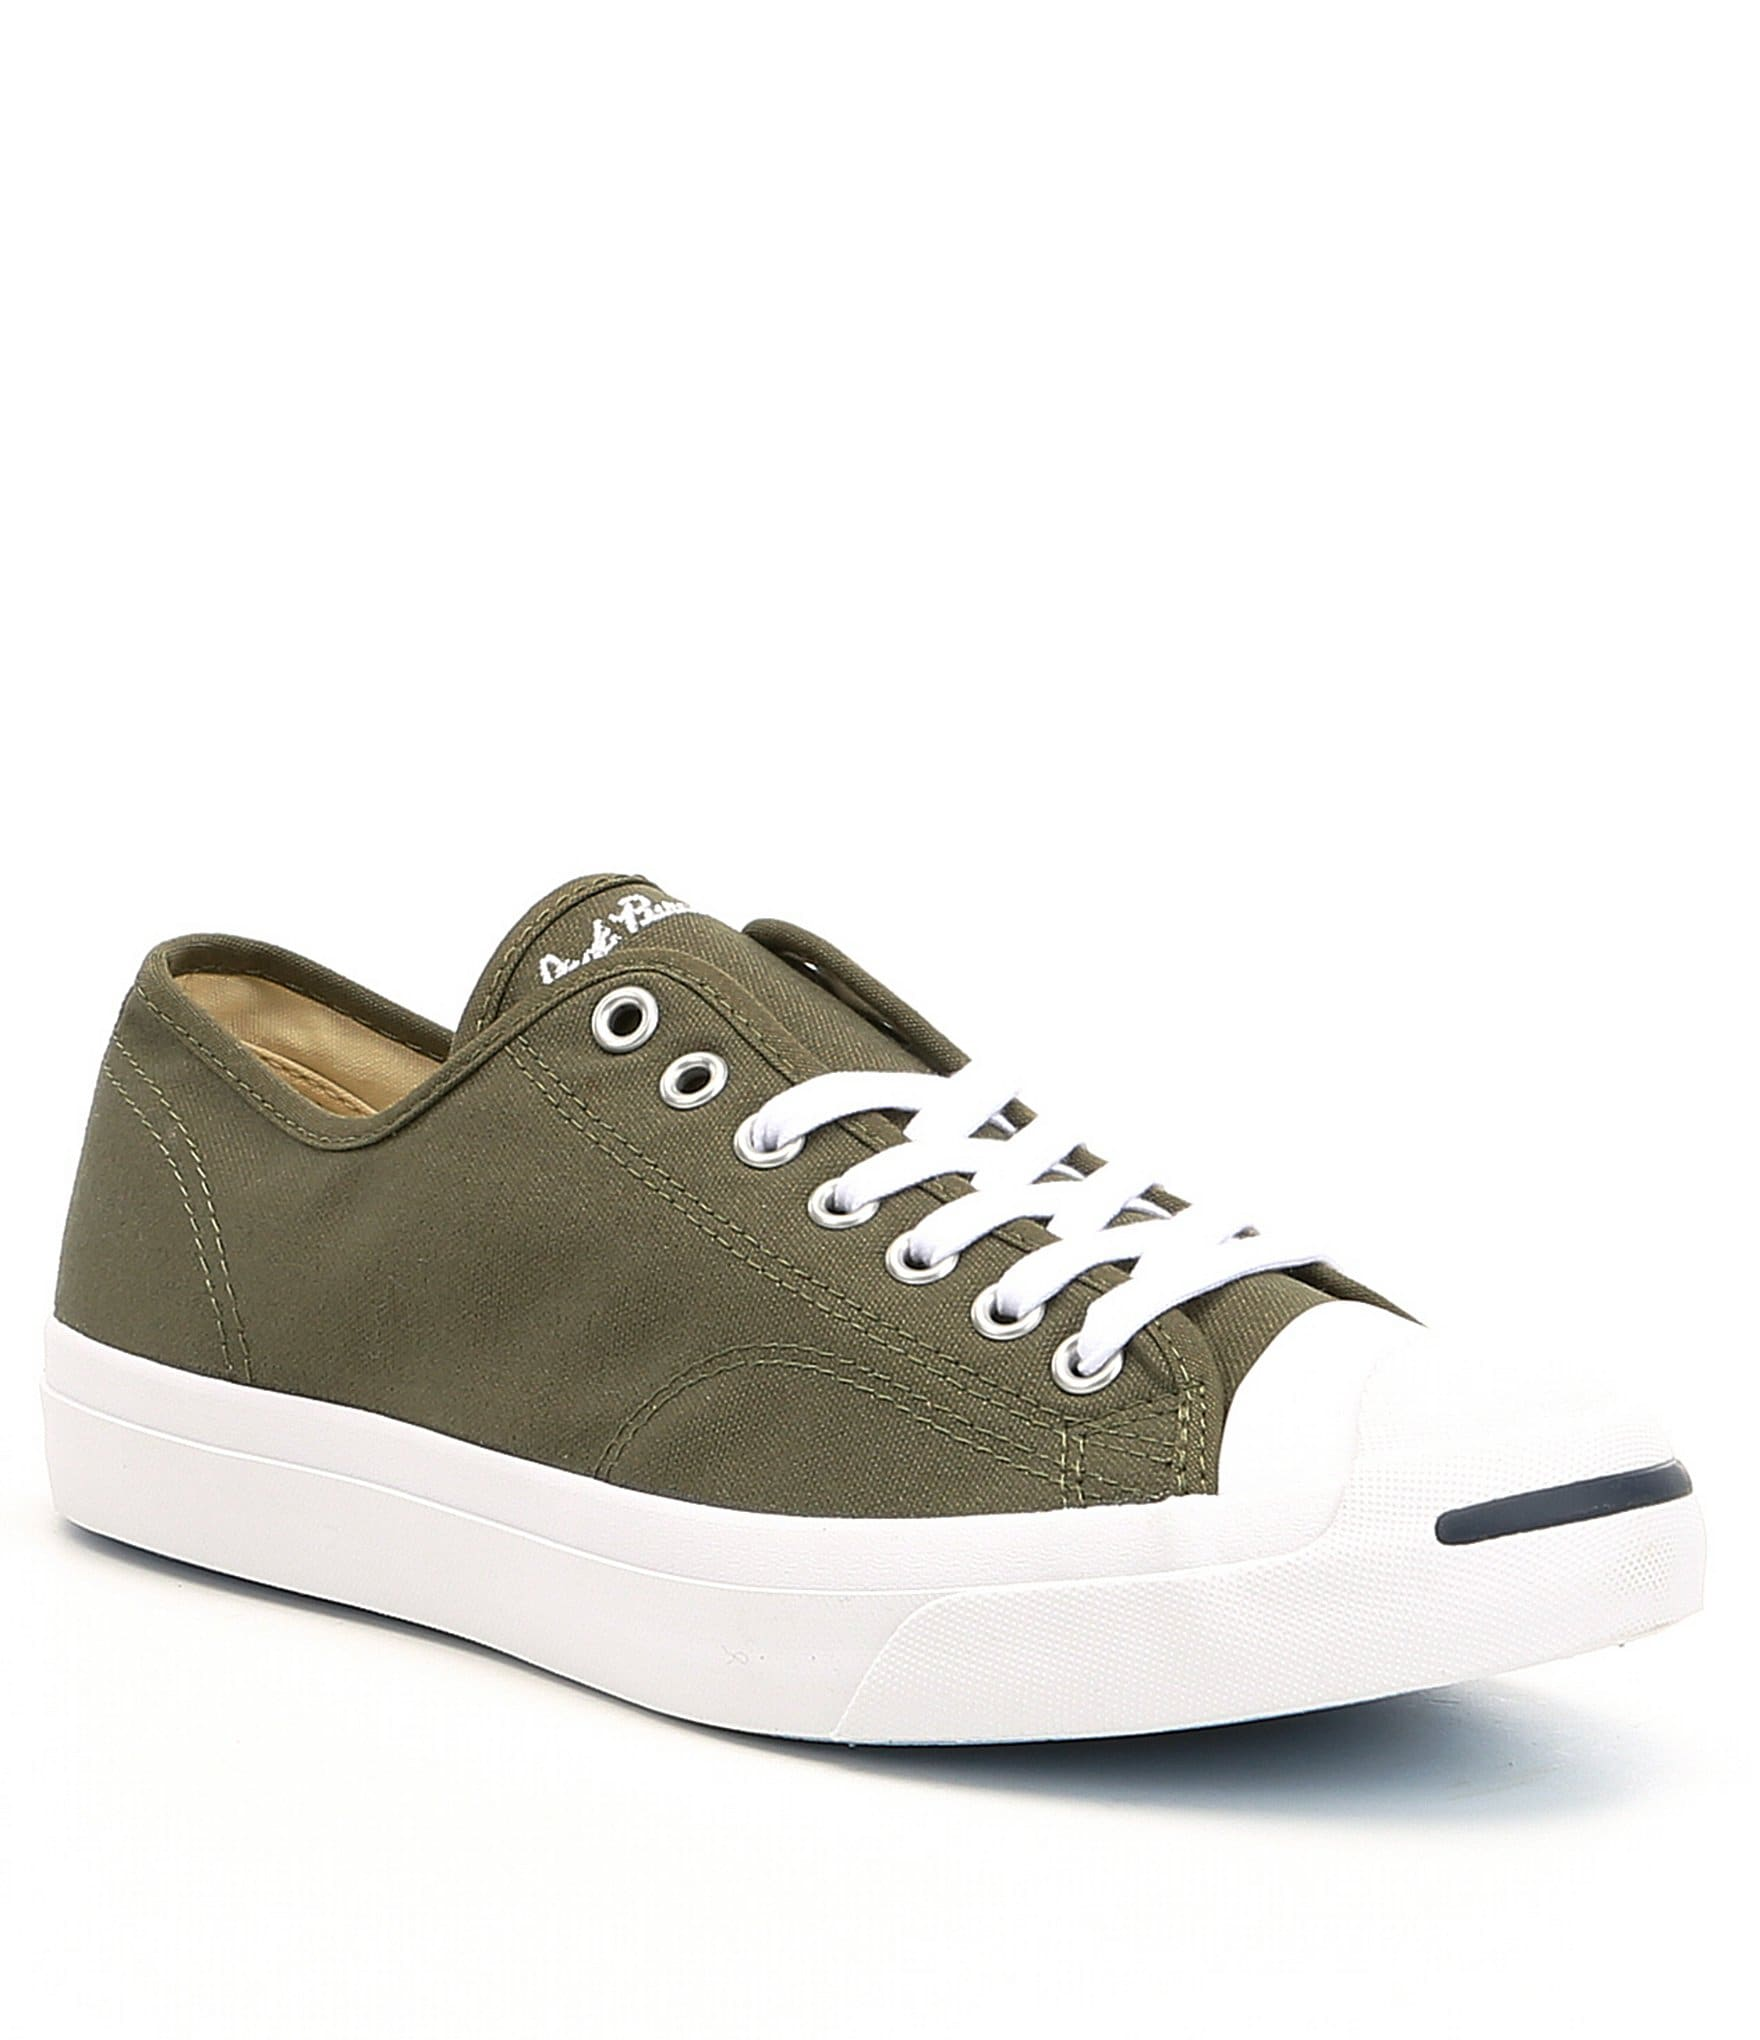 Jack Purcell Mens Shoes